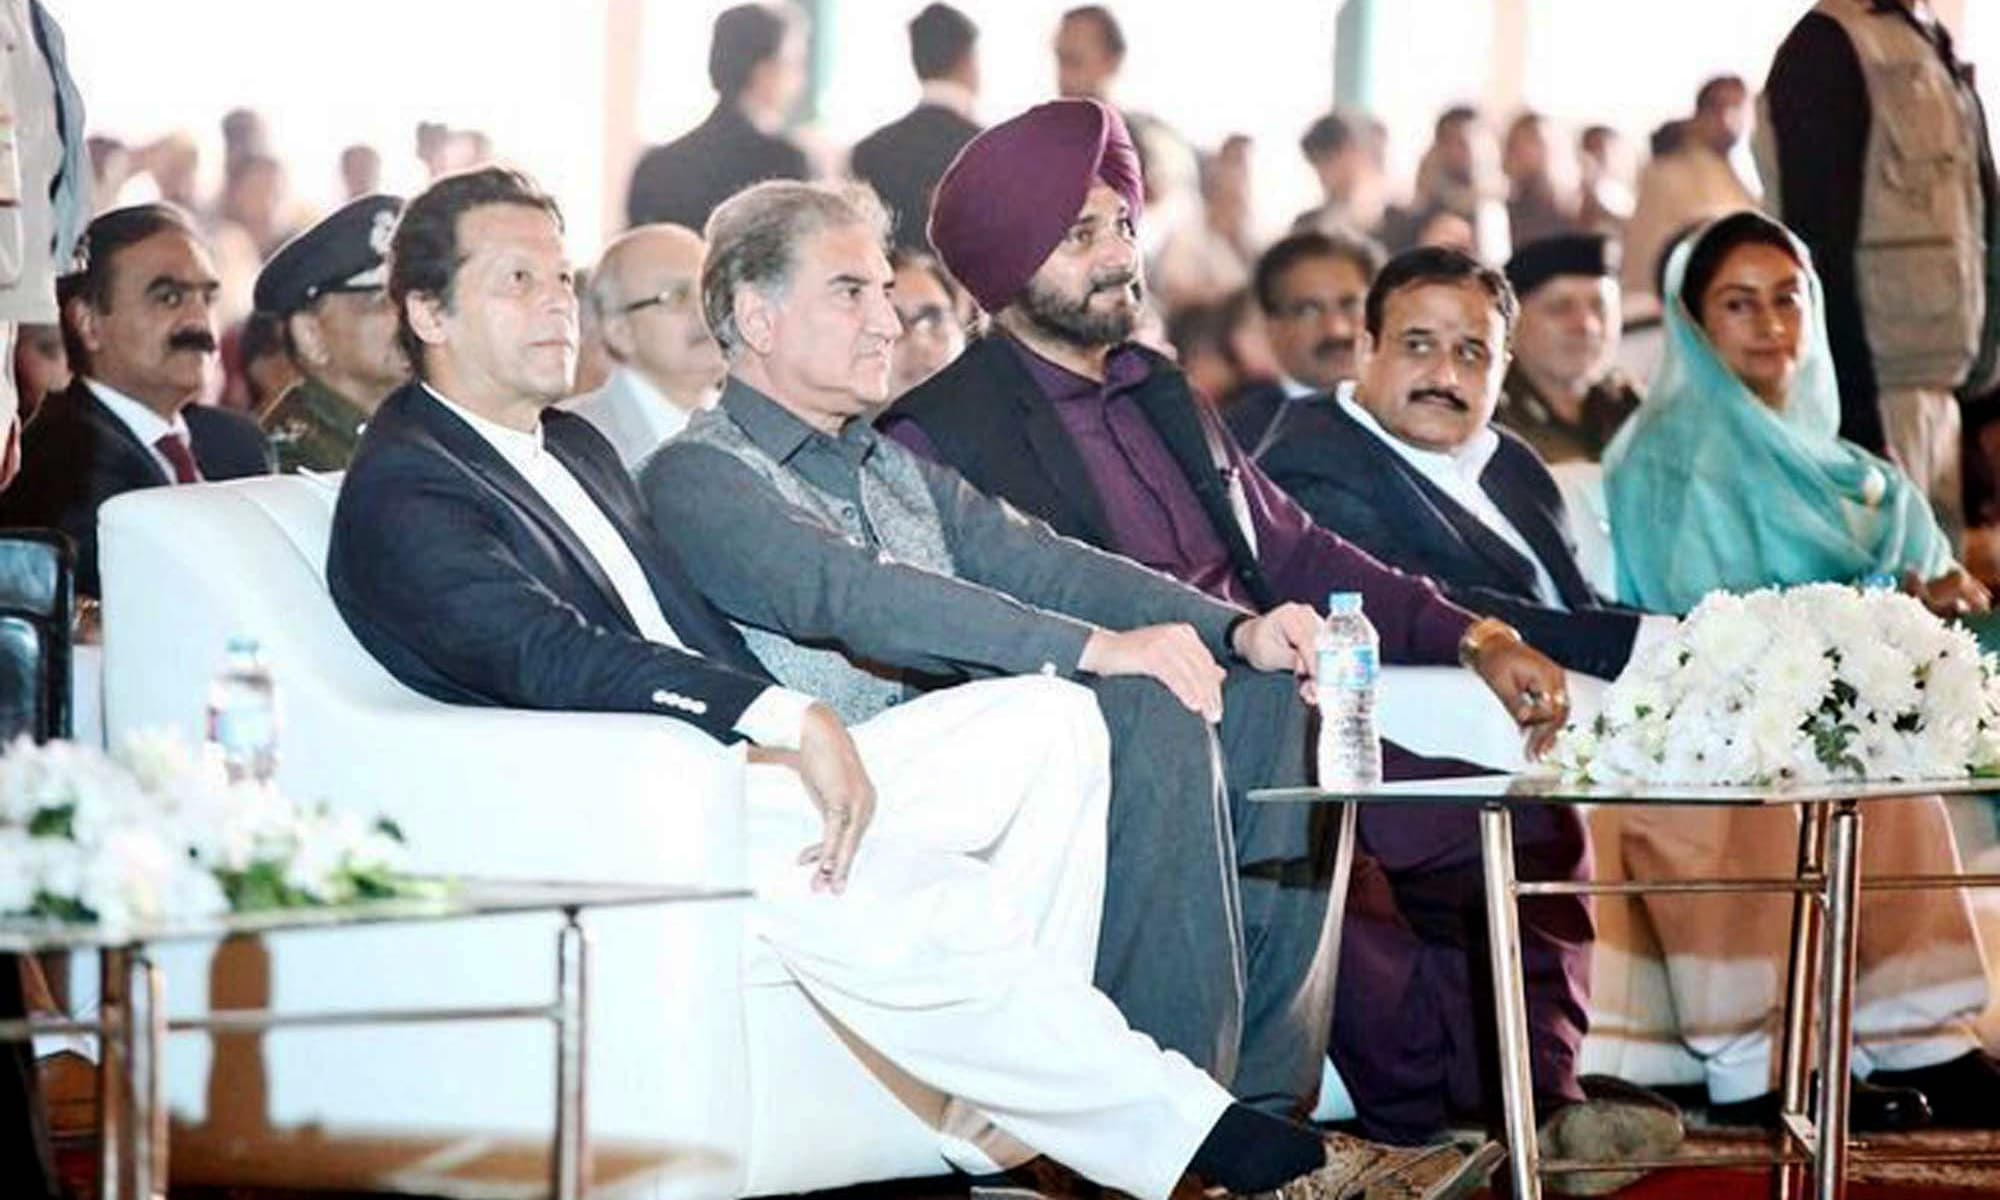 From left: PM Imran Khan, Foreign Minister Shah Mahmood Qureshi, Indian Punjab Minister of Local Government, Tourism, Cultural Affairs and Museums Navjot Singh Sidhu, Punjab Chief Minister Usman Buzdar and Indian Minister for Food Harsimrat Kaur Badal. ─ Photo courtesy Radio Pakistan Twitter